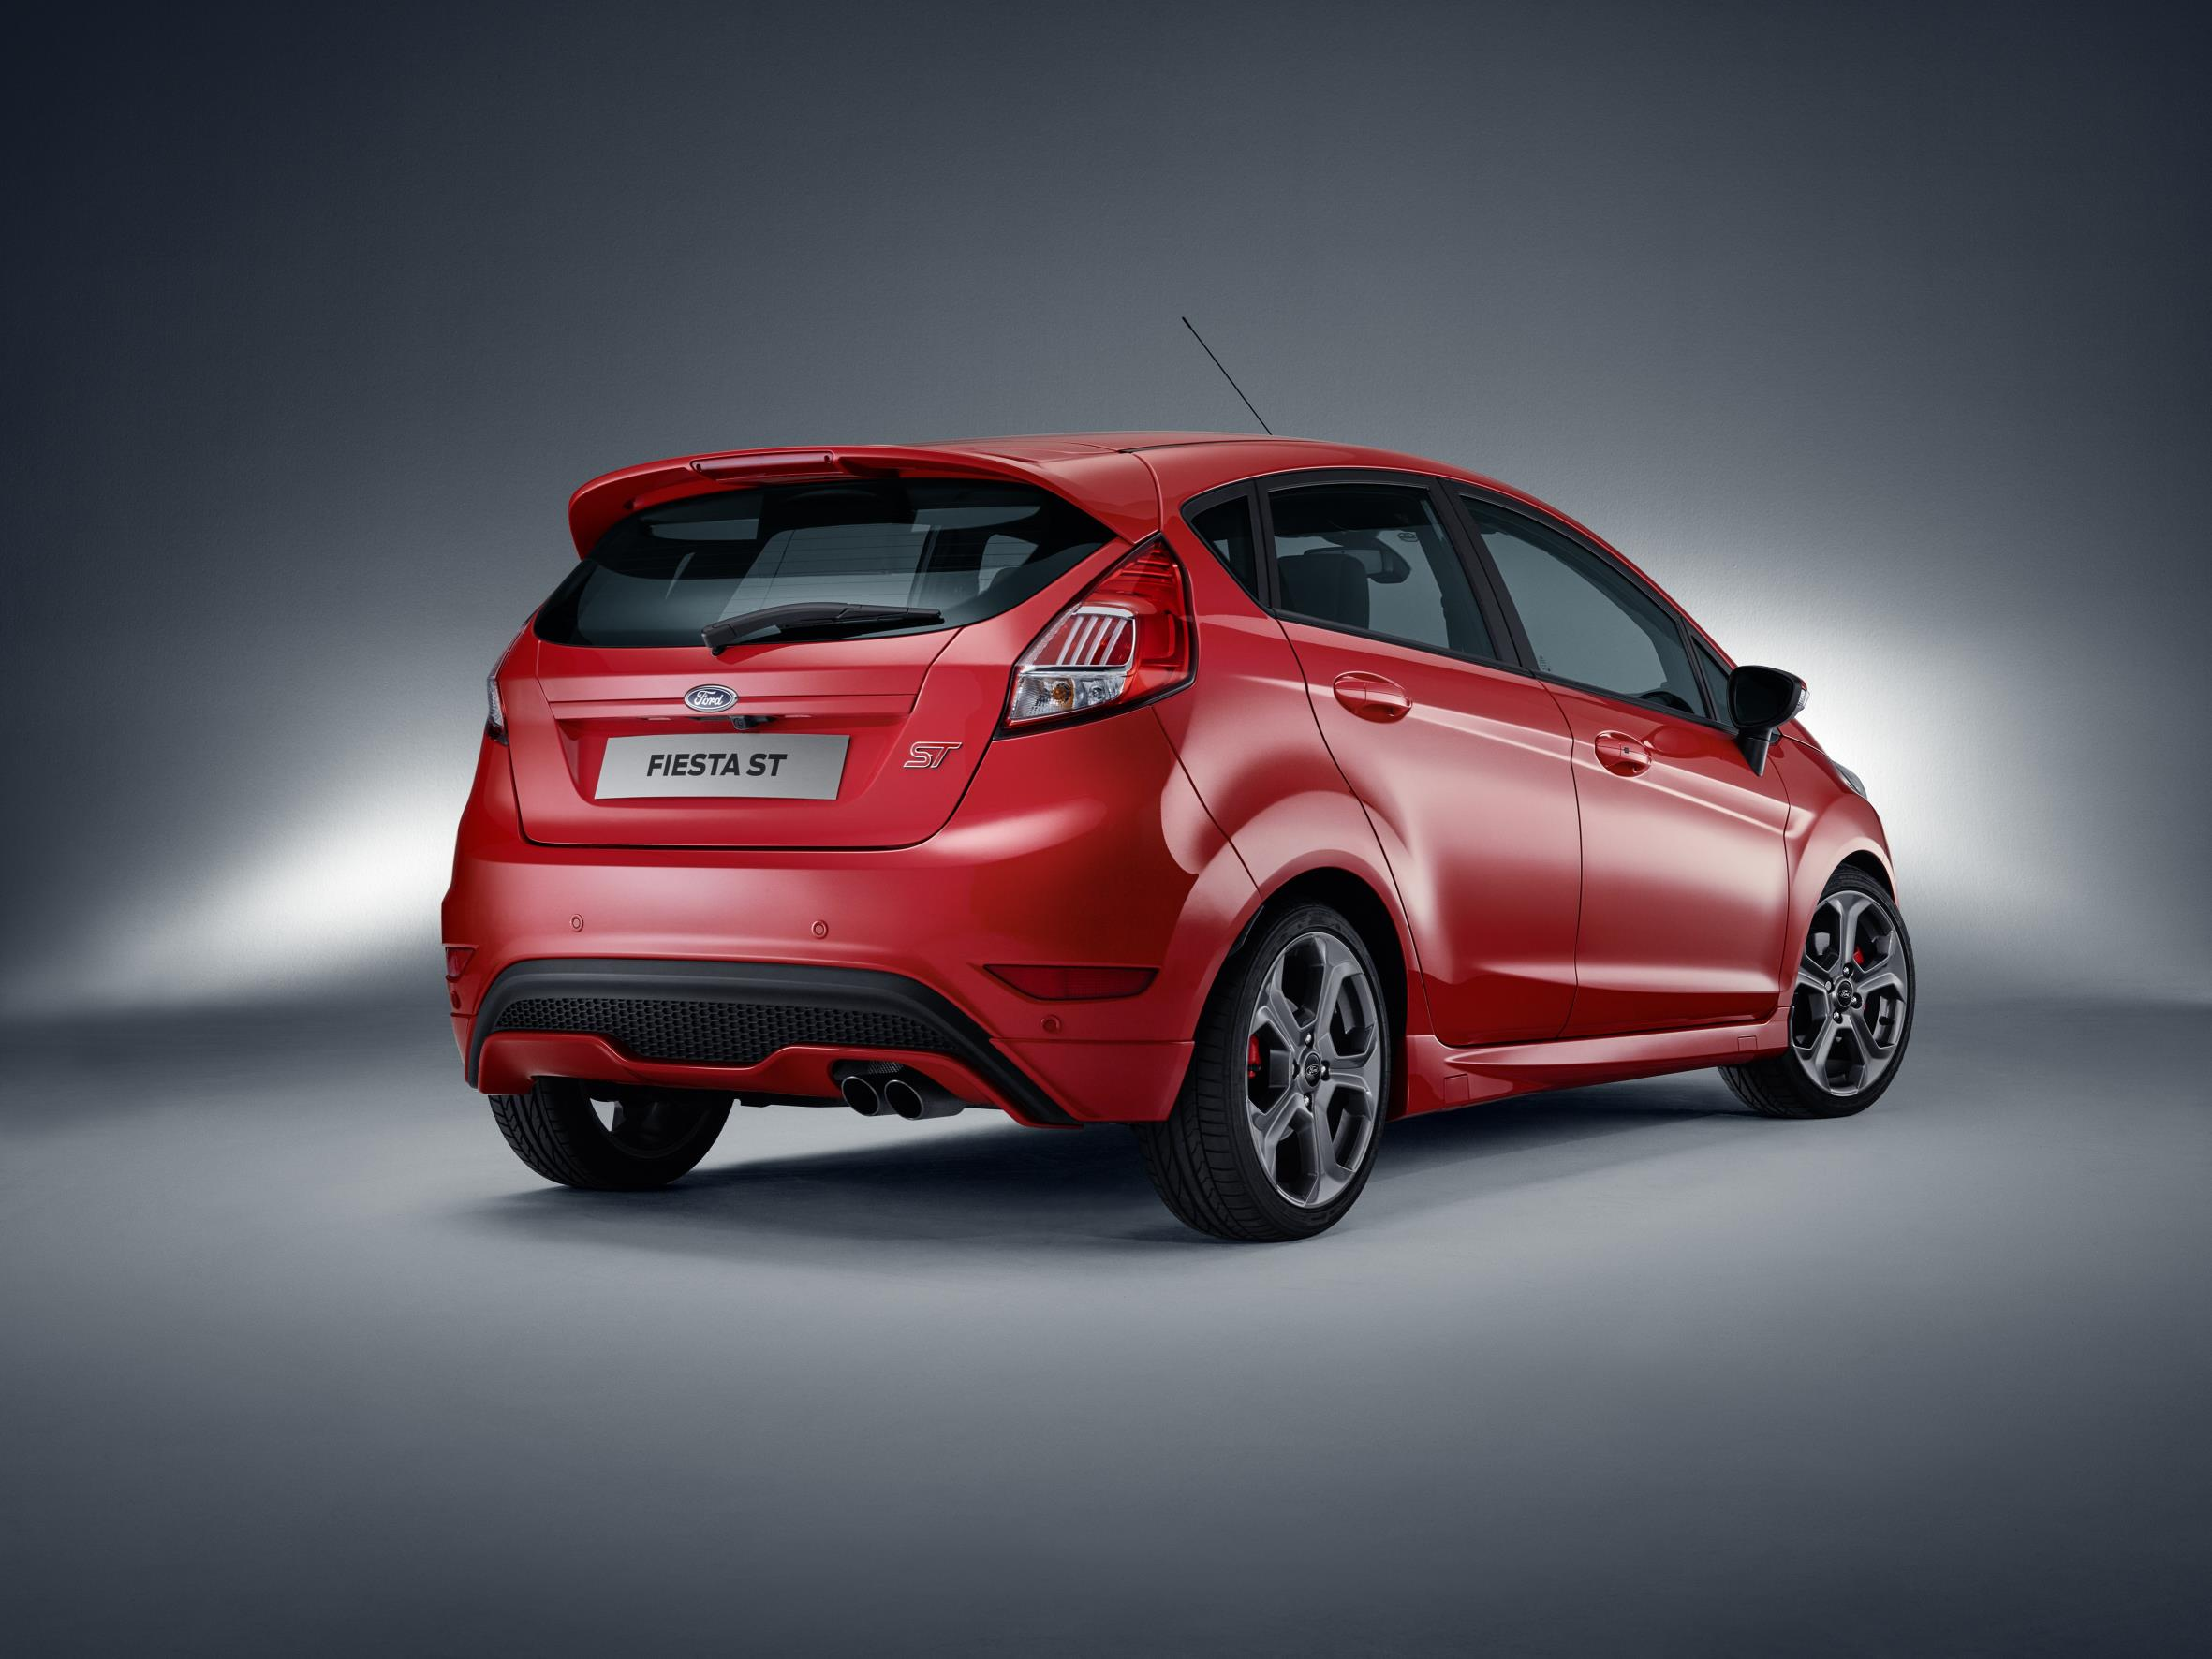 2017 Ford Fiesta St Five Door Introduced In Europe